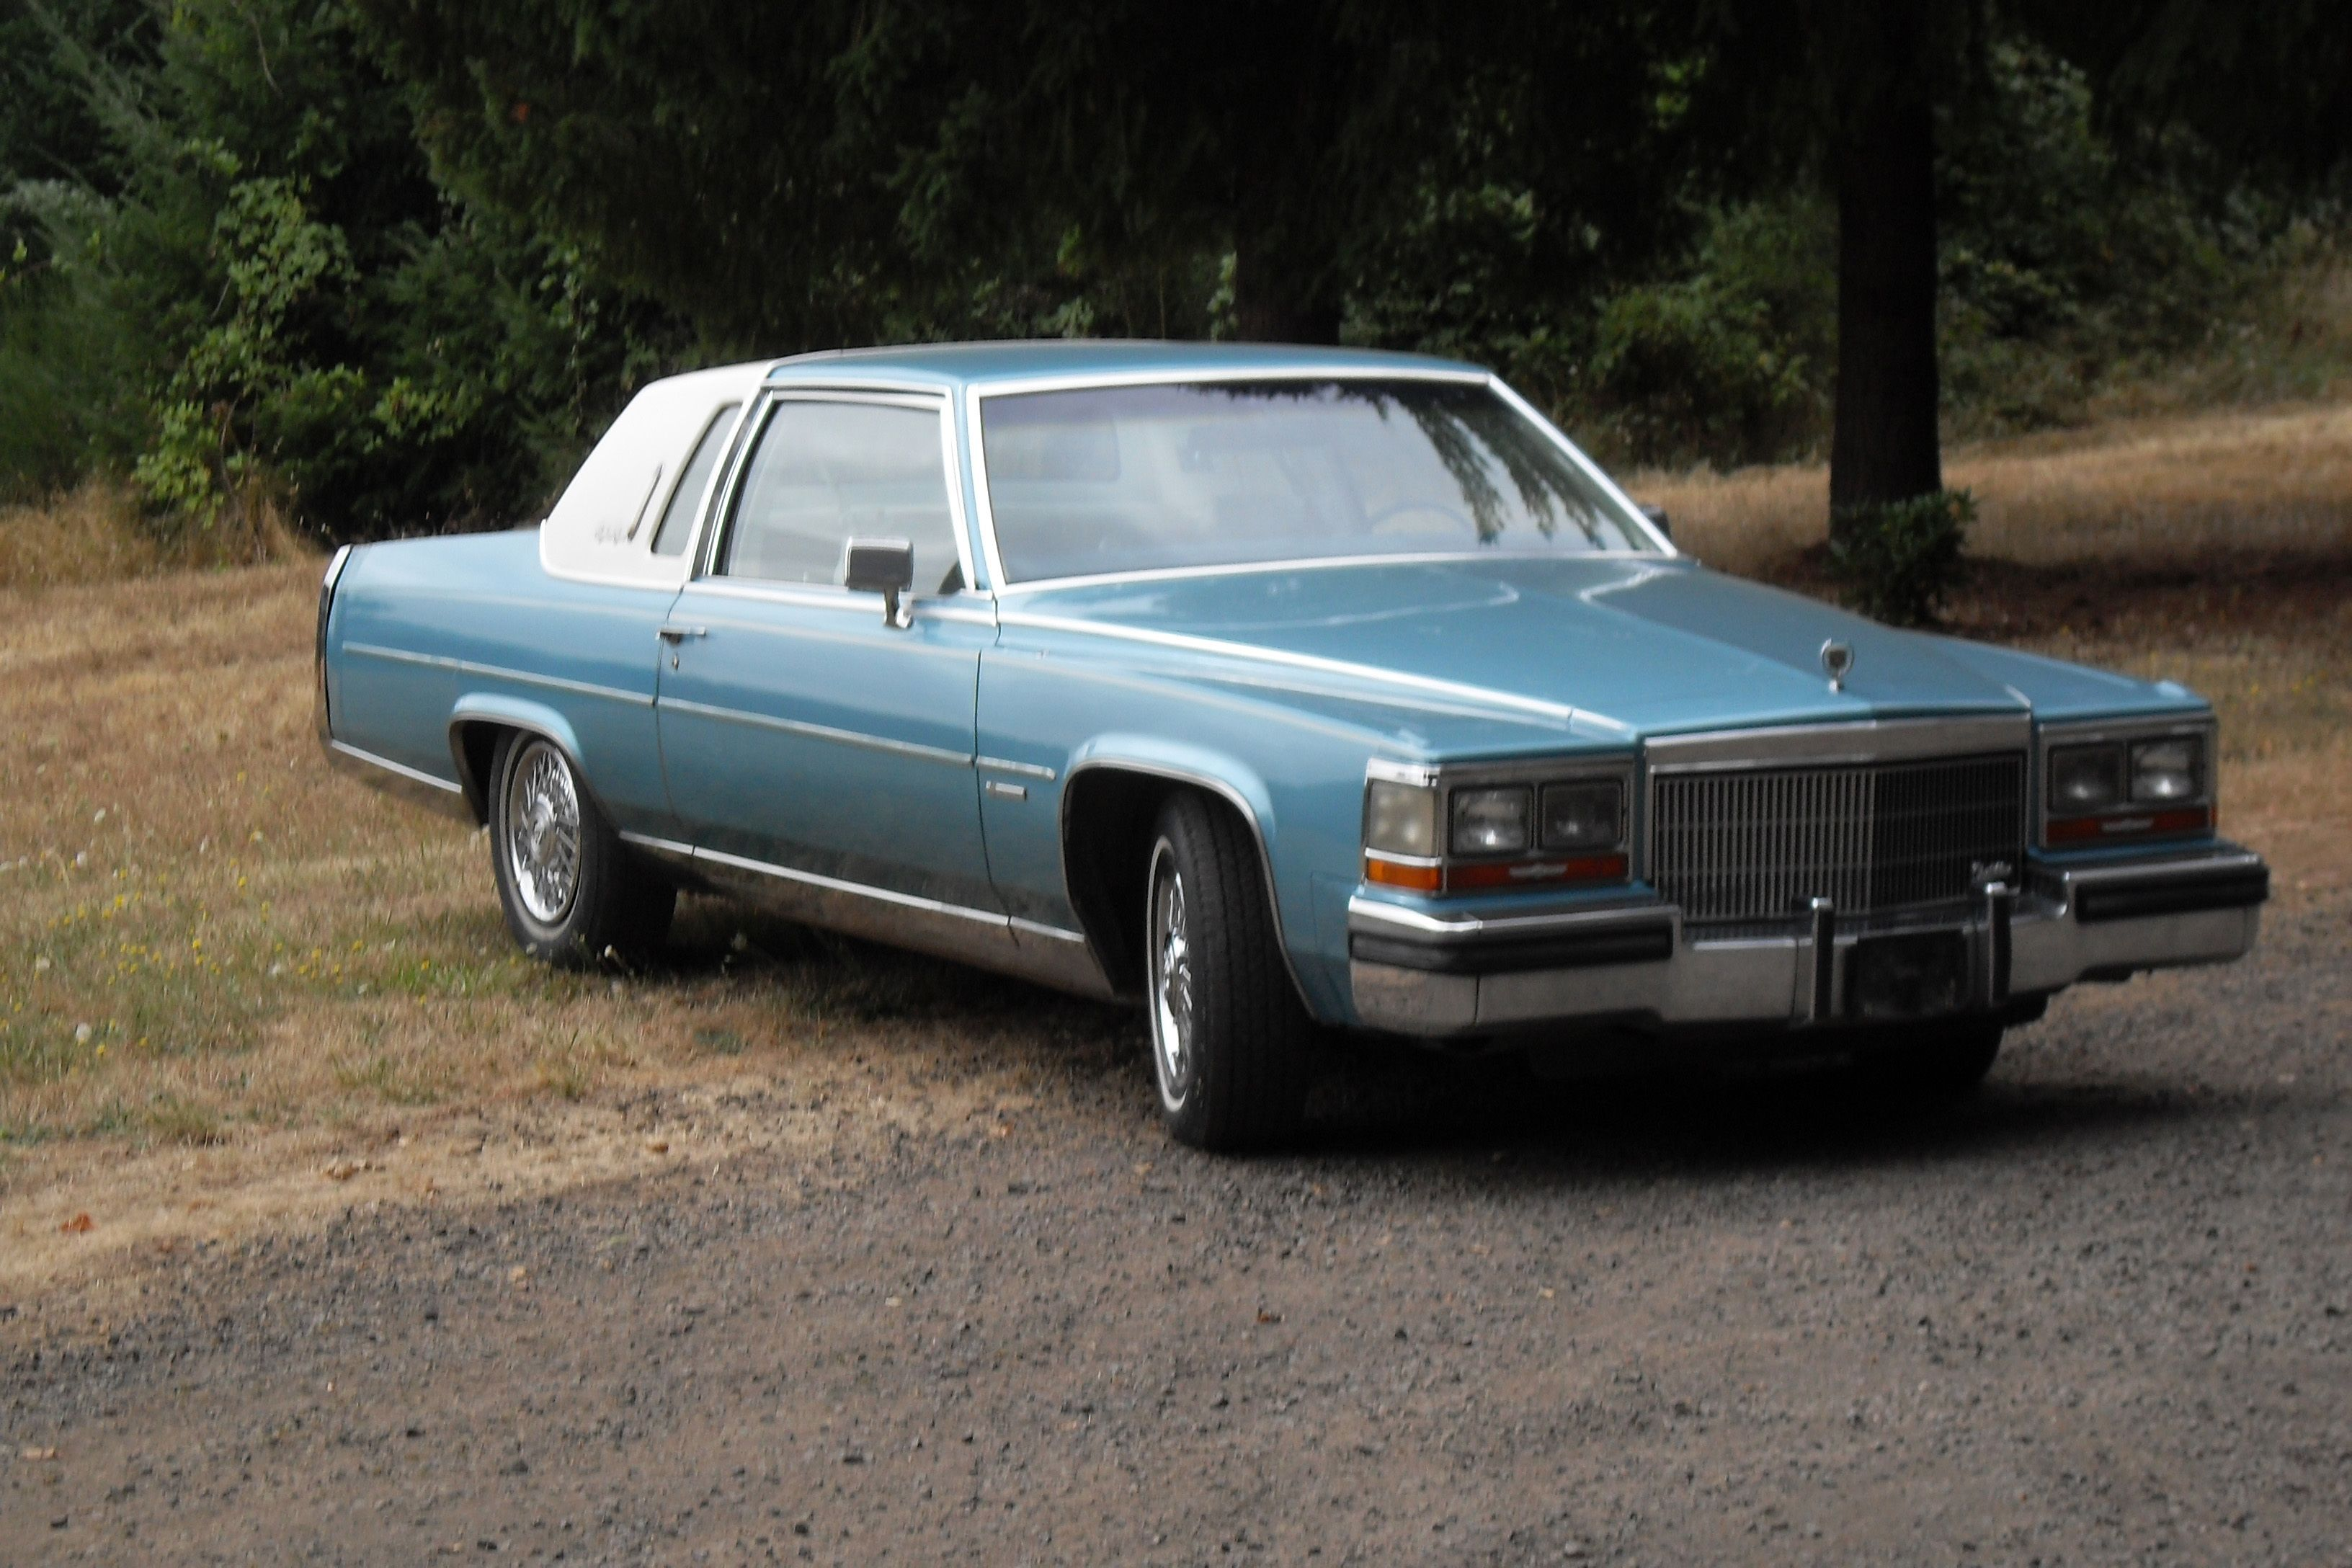 Thomas's 1981 Cadillac Fleetwood Brougham de Elegance-coupe' a very